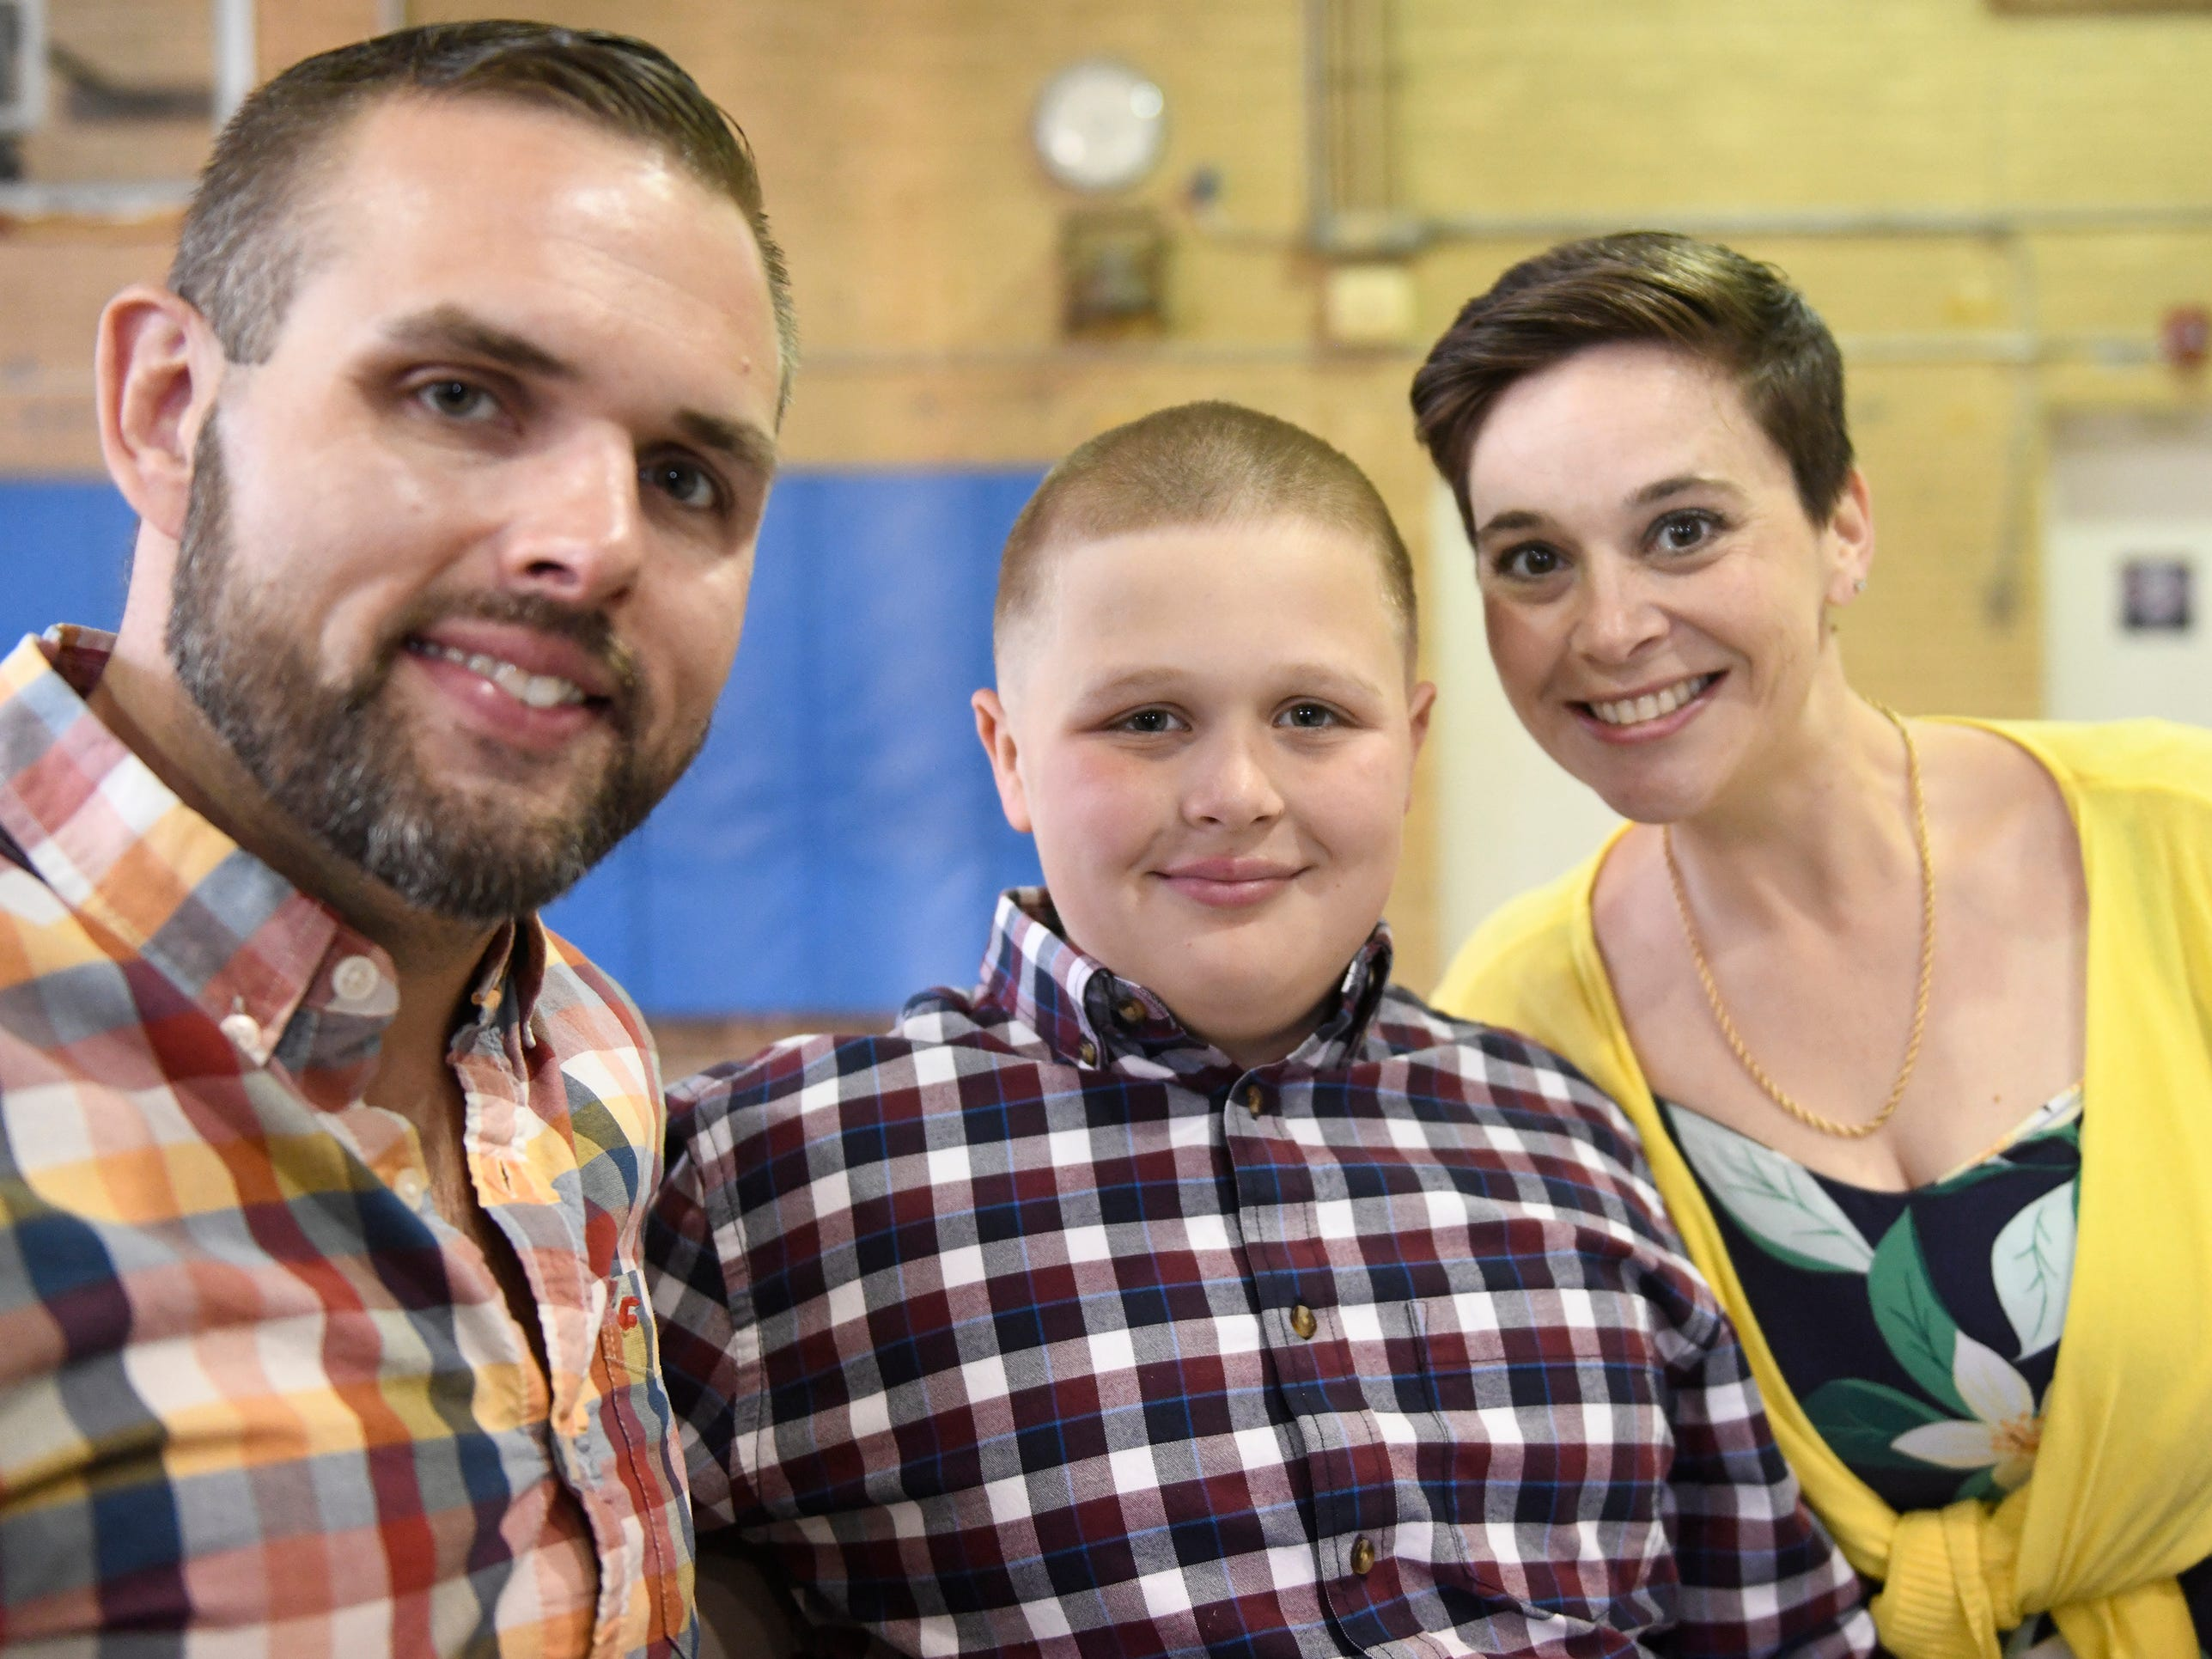 Winslow Elementary School student Zachary Zavis was presented with a Giraffe Hero Award during a special ceremony on Wednesday, May 15, 2019.